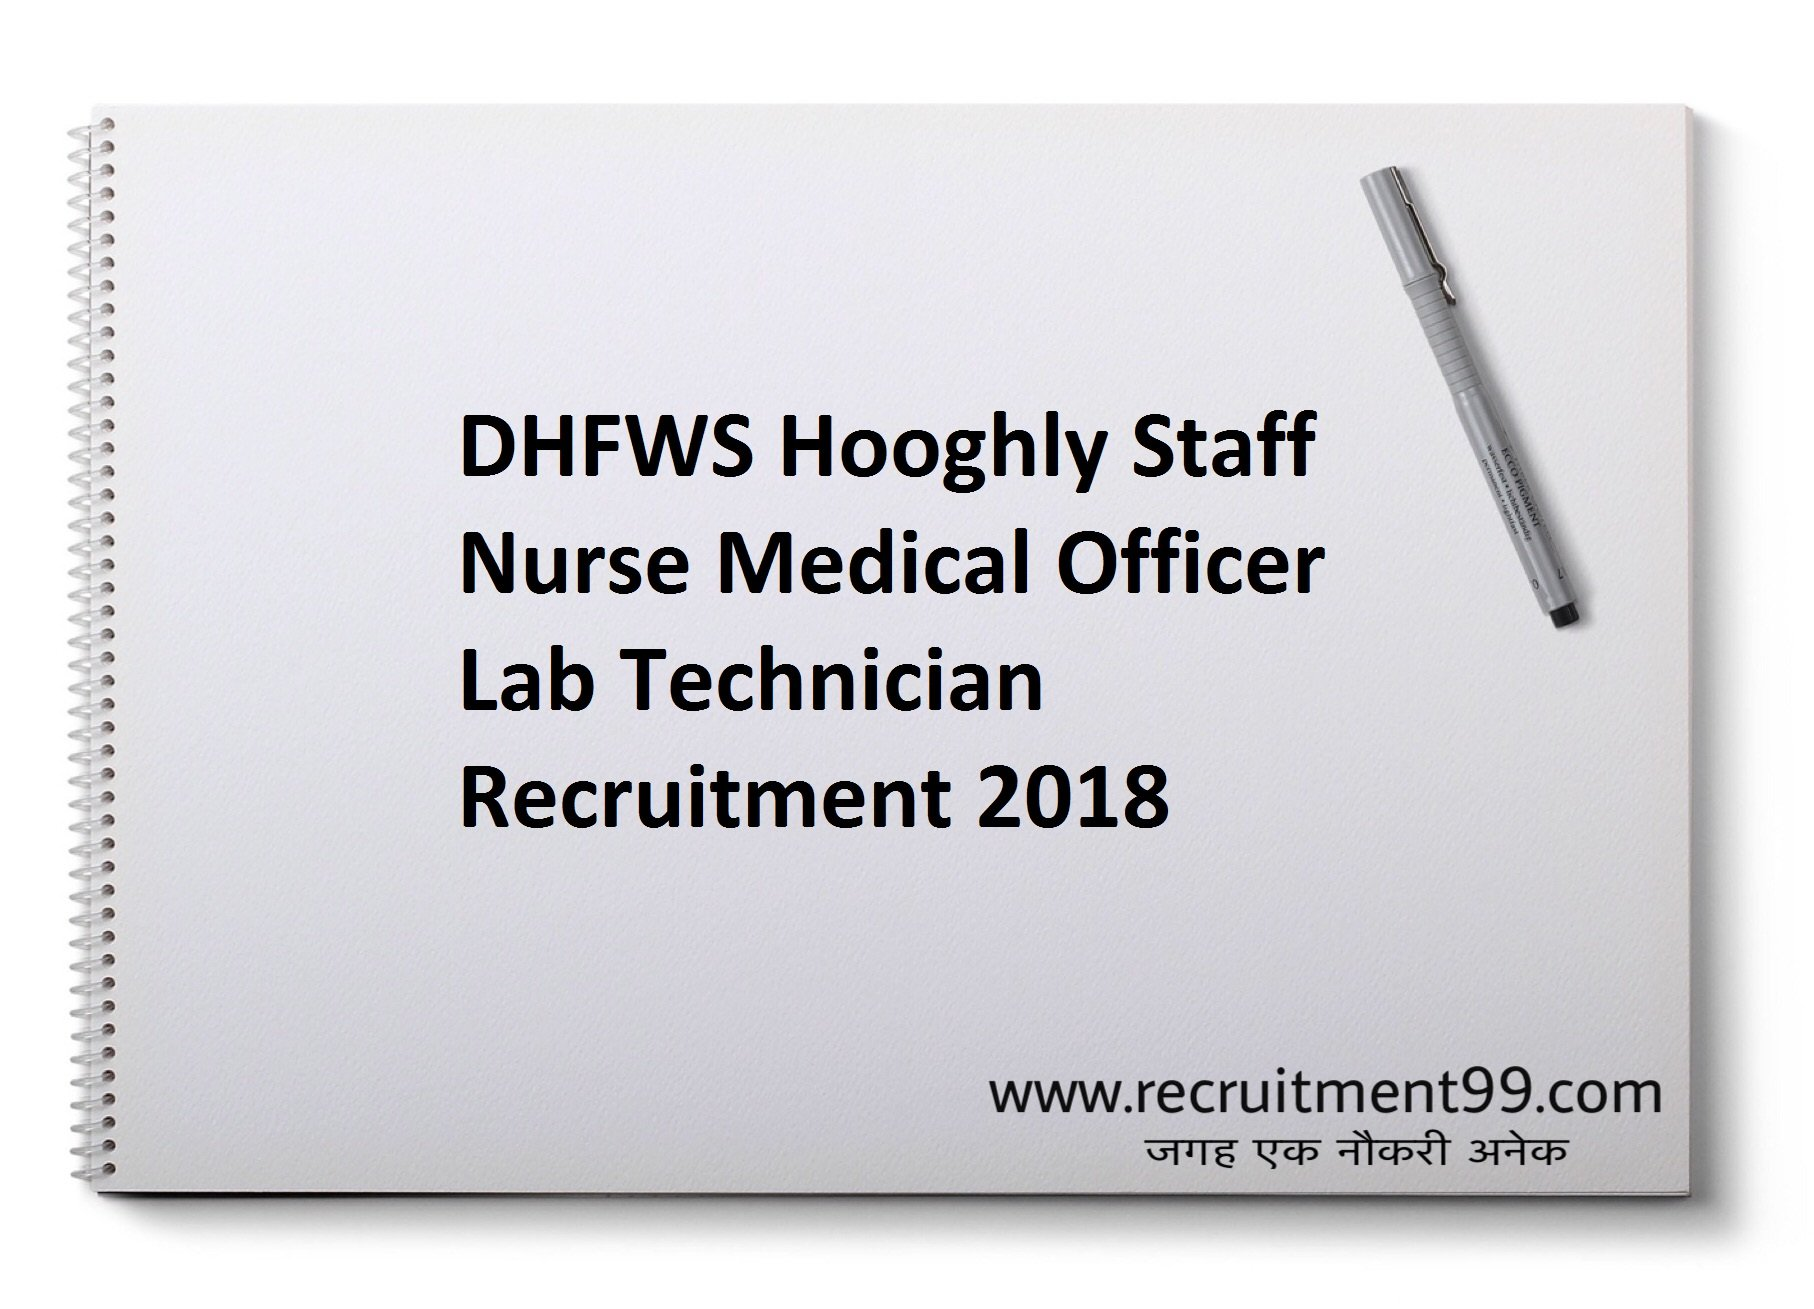 DHFWS Hooghly Staff Nurse Medical Officer Lab Technician Recruitment Admit Card Result 2018